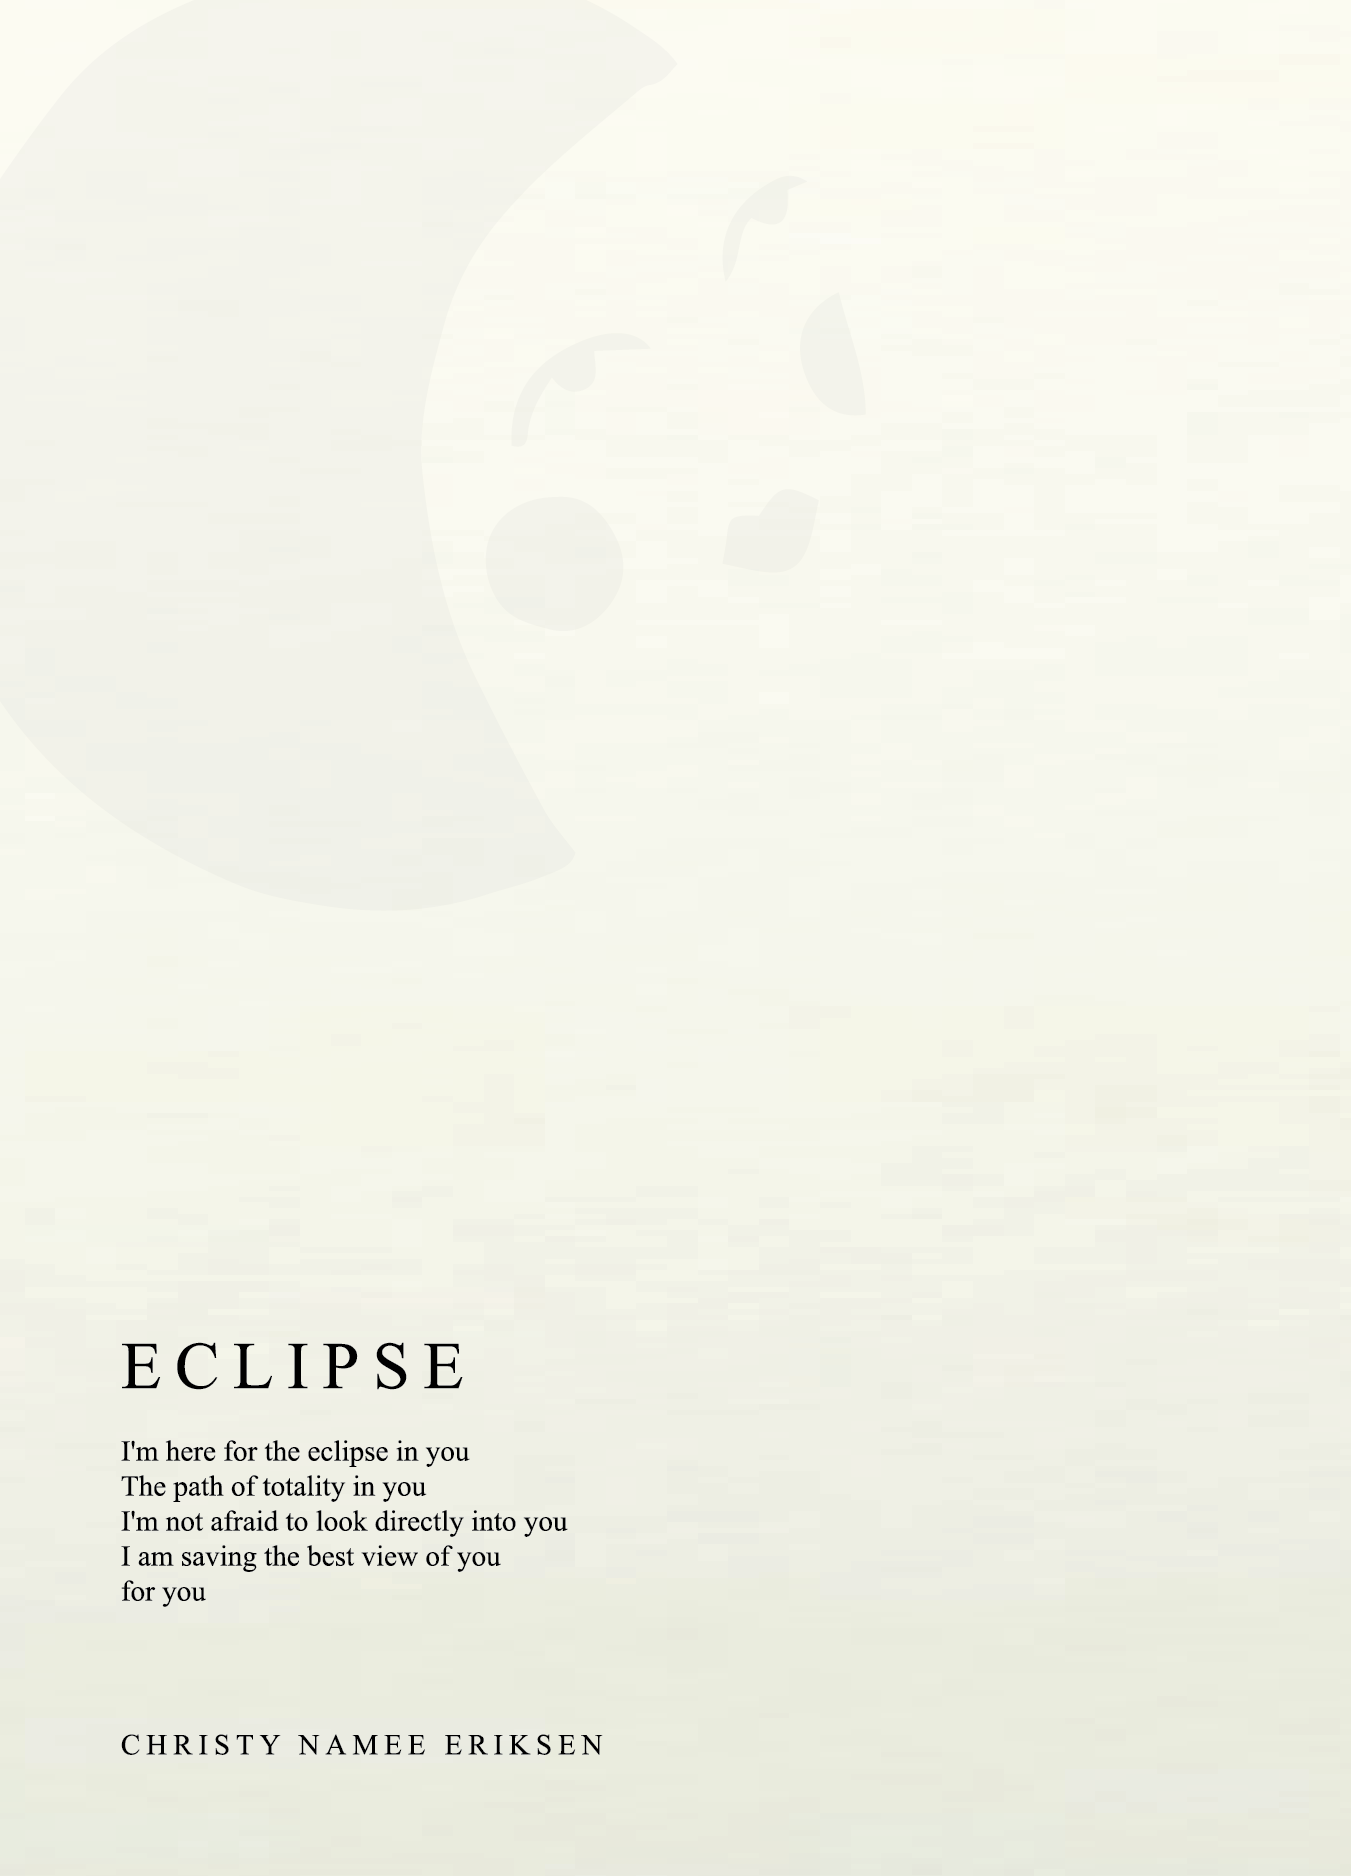 Eclipse (letterpress poem + pin)